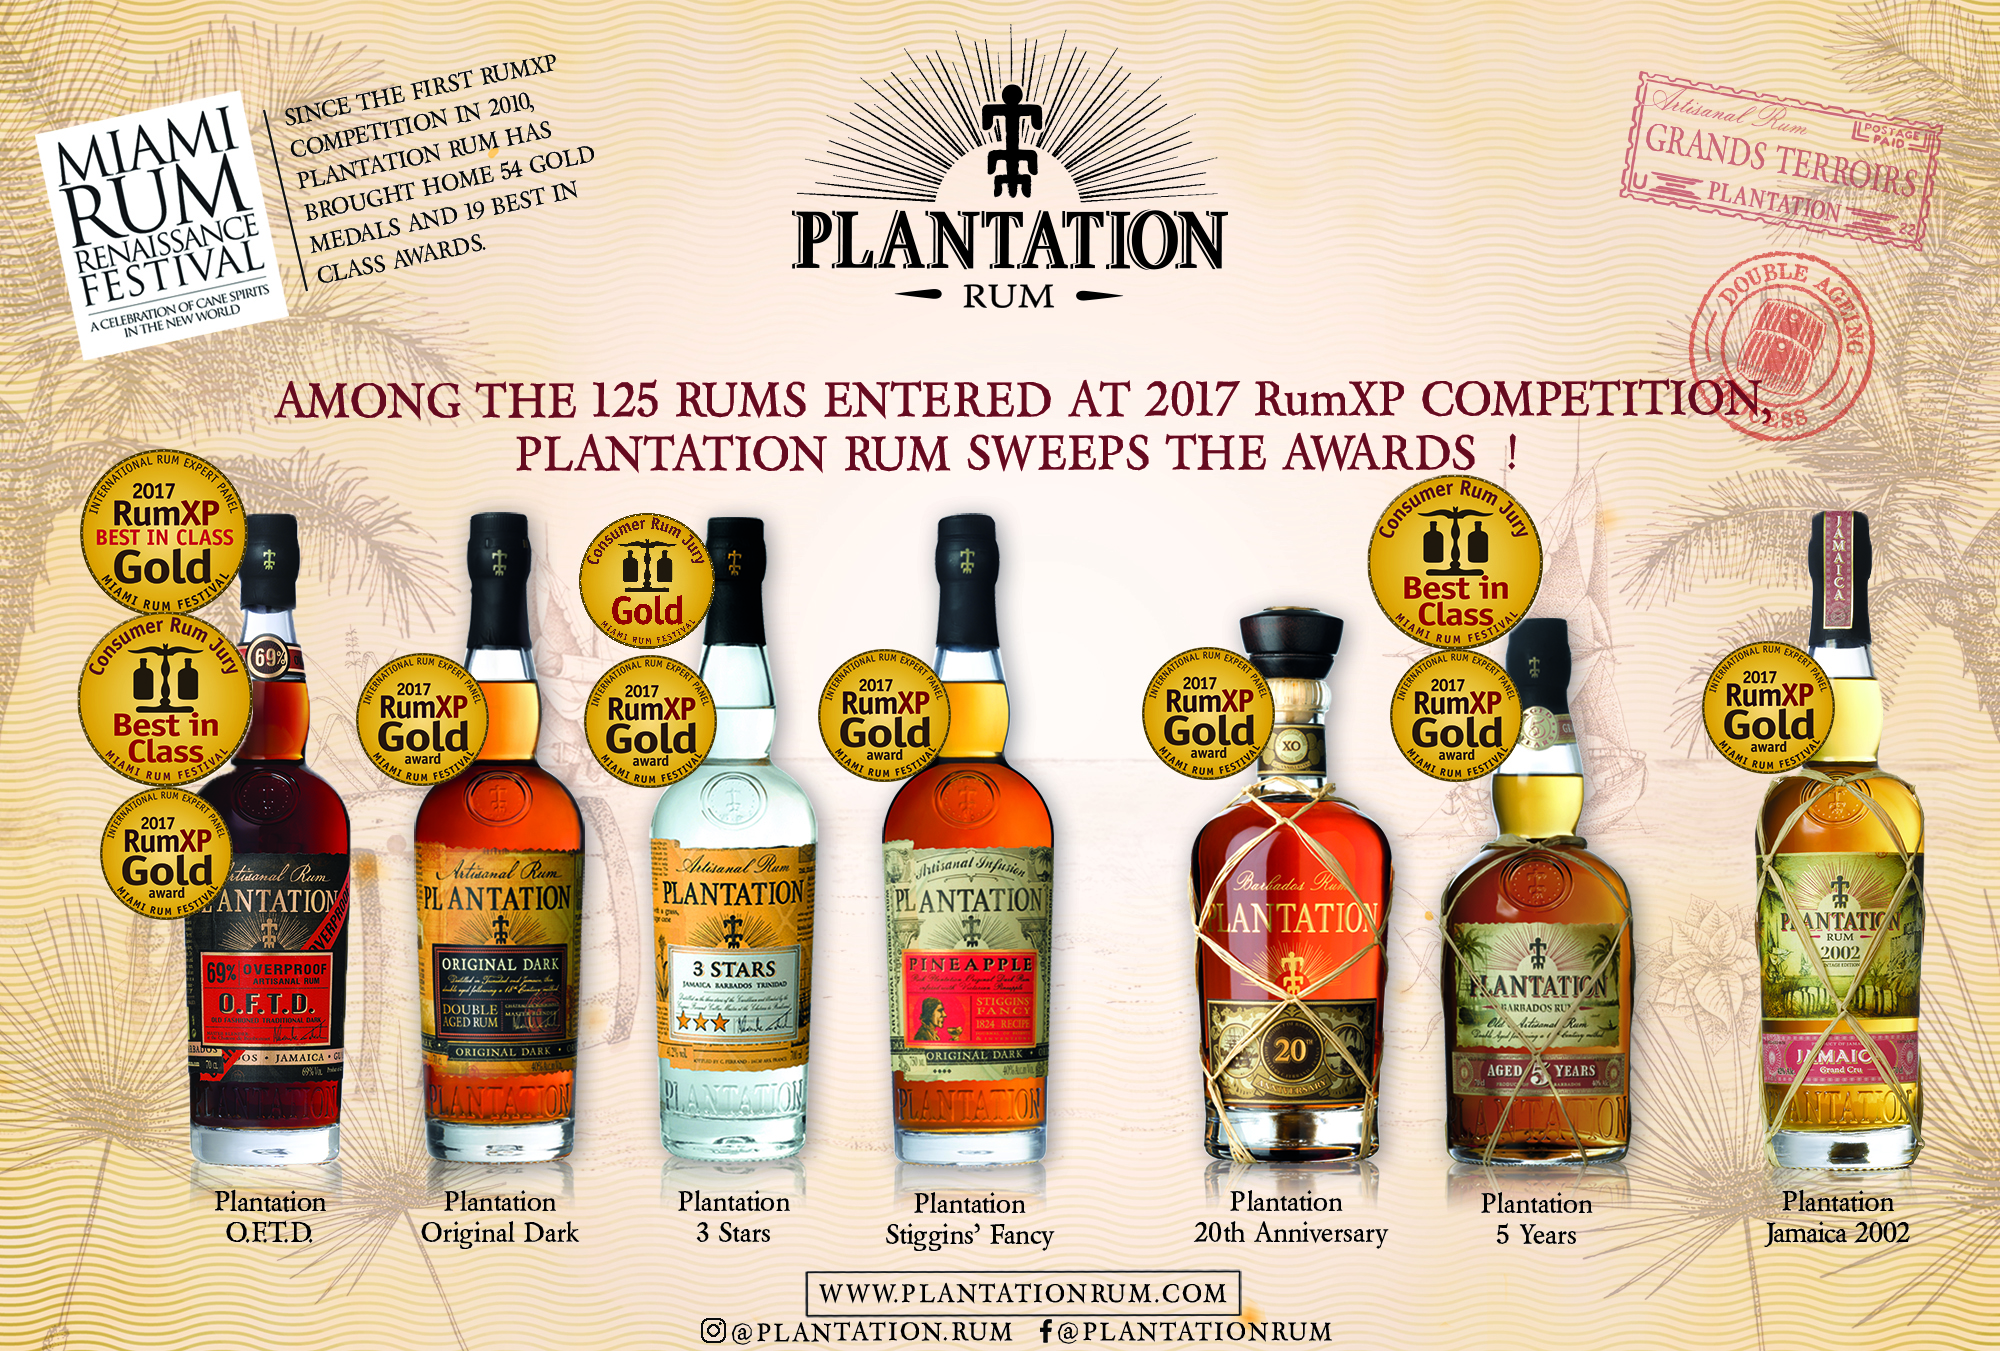 7 -MAY PLANTATION - 2017medal Miami Rum Fest